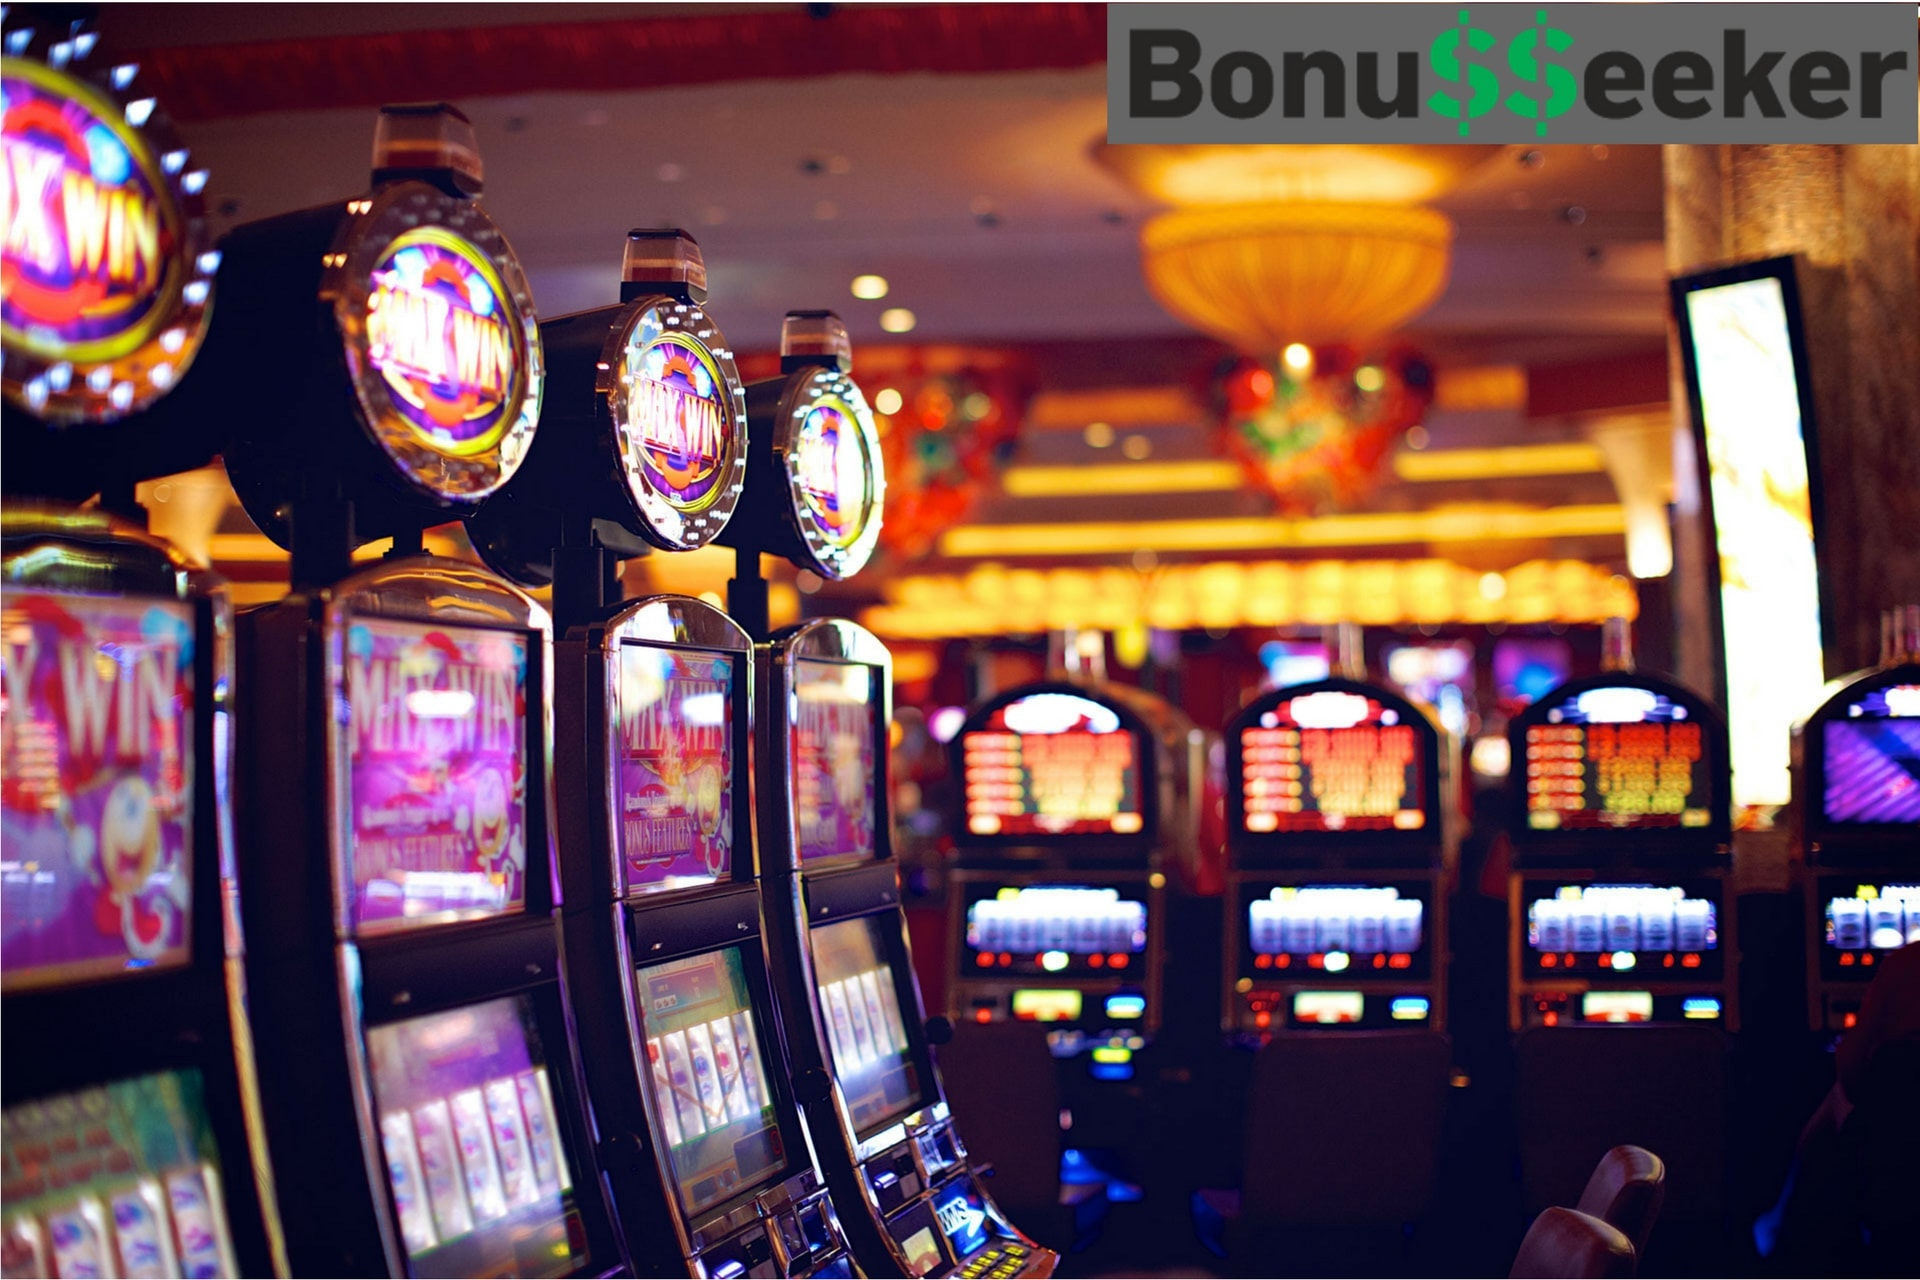 Golden Nugget Online Casino - Get $20 Free Play this November